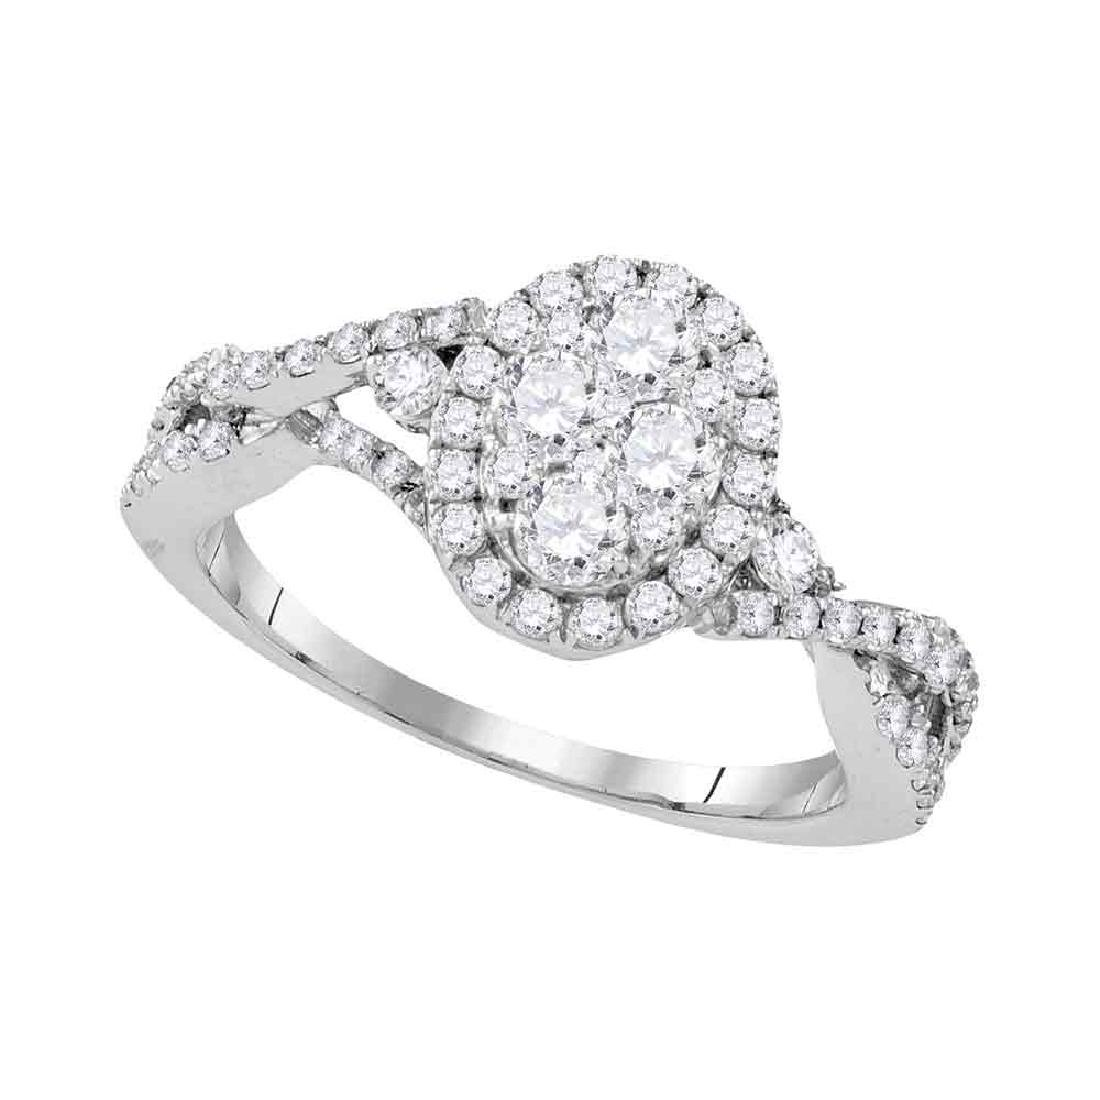 1.13 CTW Diamond Oval Cluster Halo Bridal Engagement